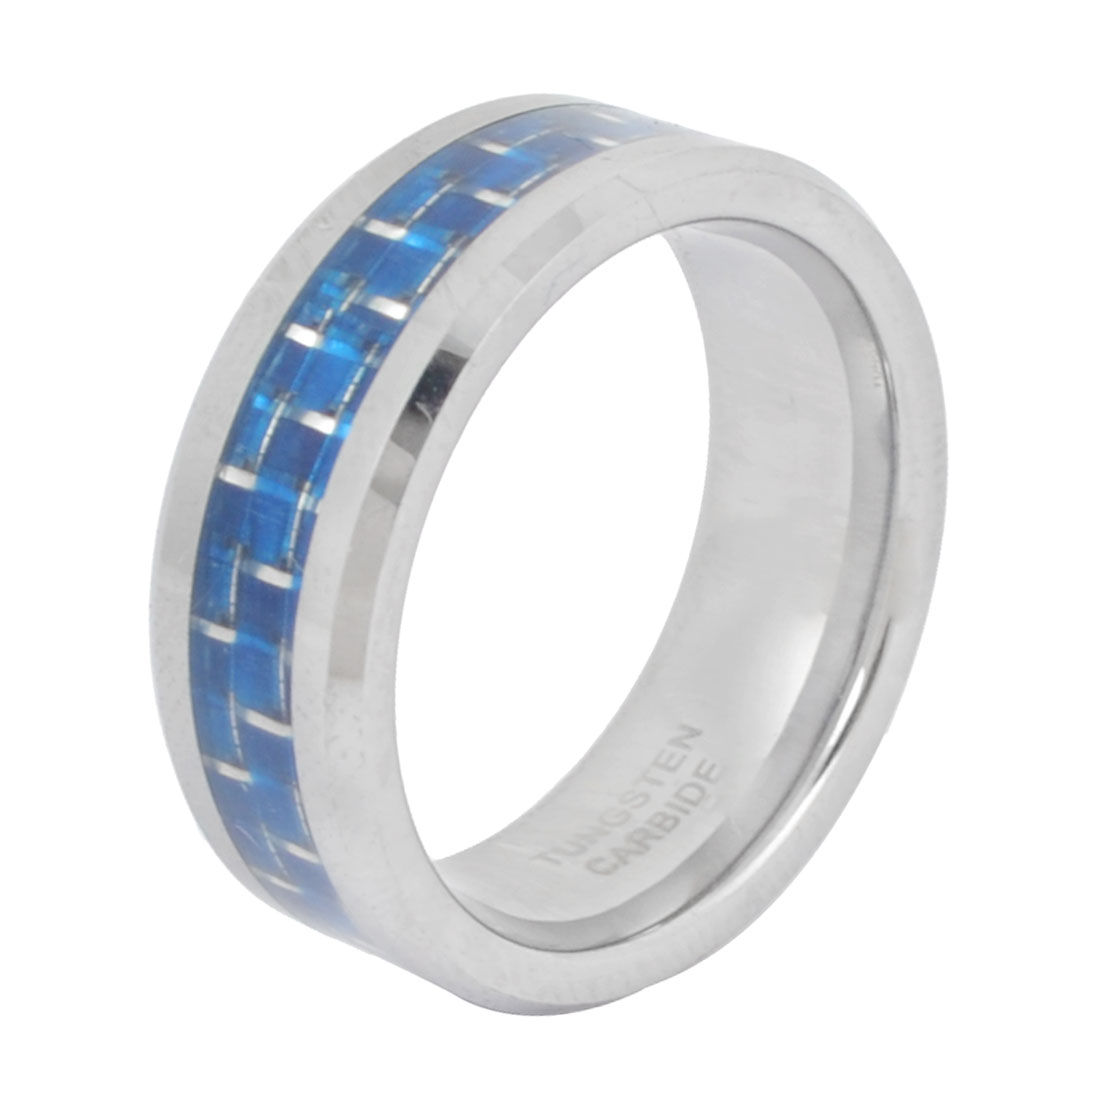 Silver Tone Blue 8mm Width Finger Ring Decoration US 8 1/4 for Man